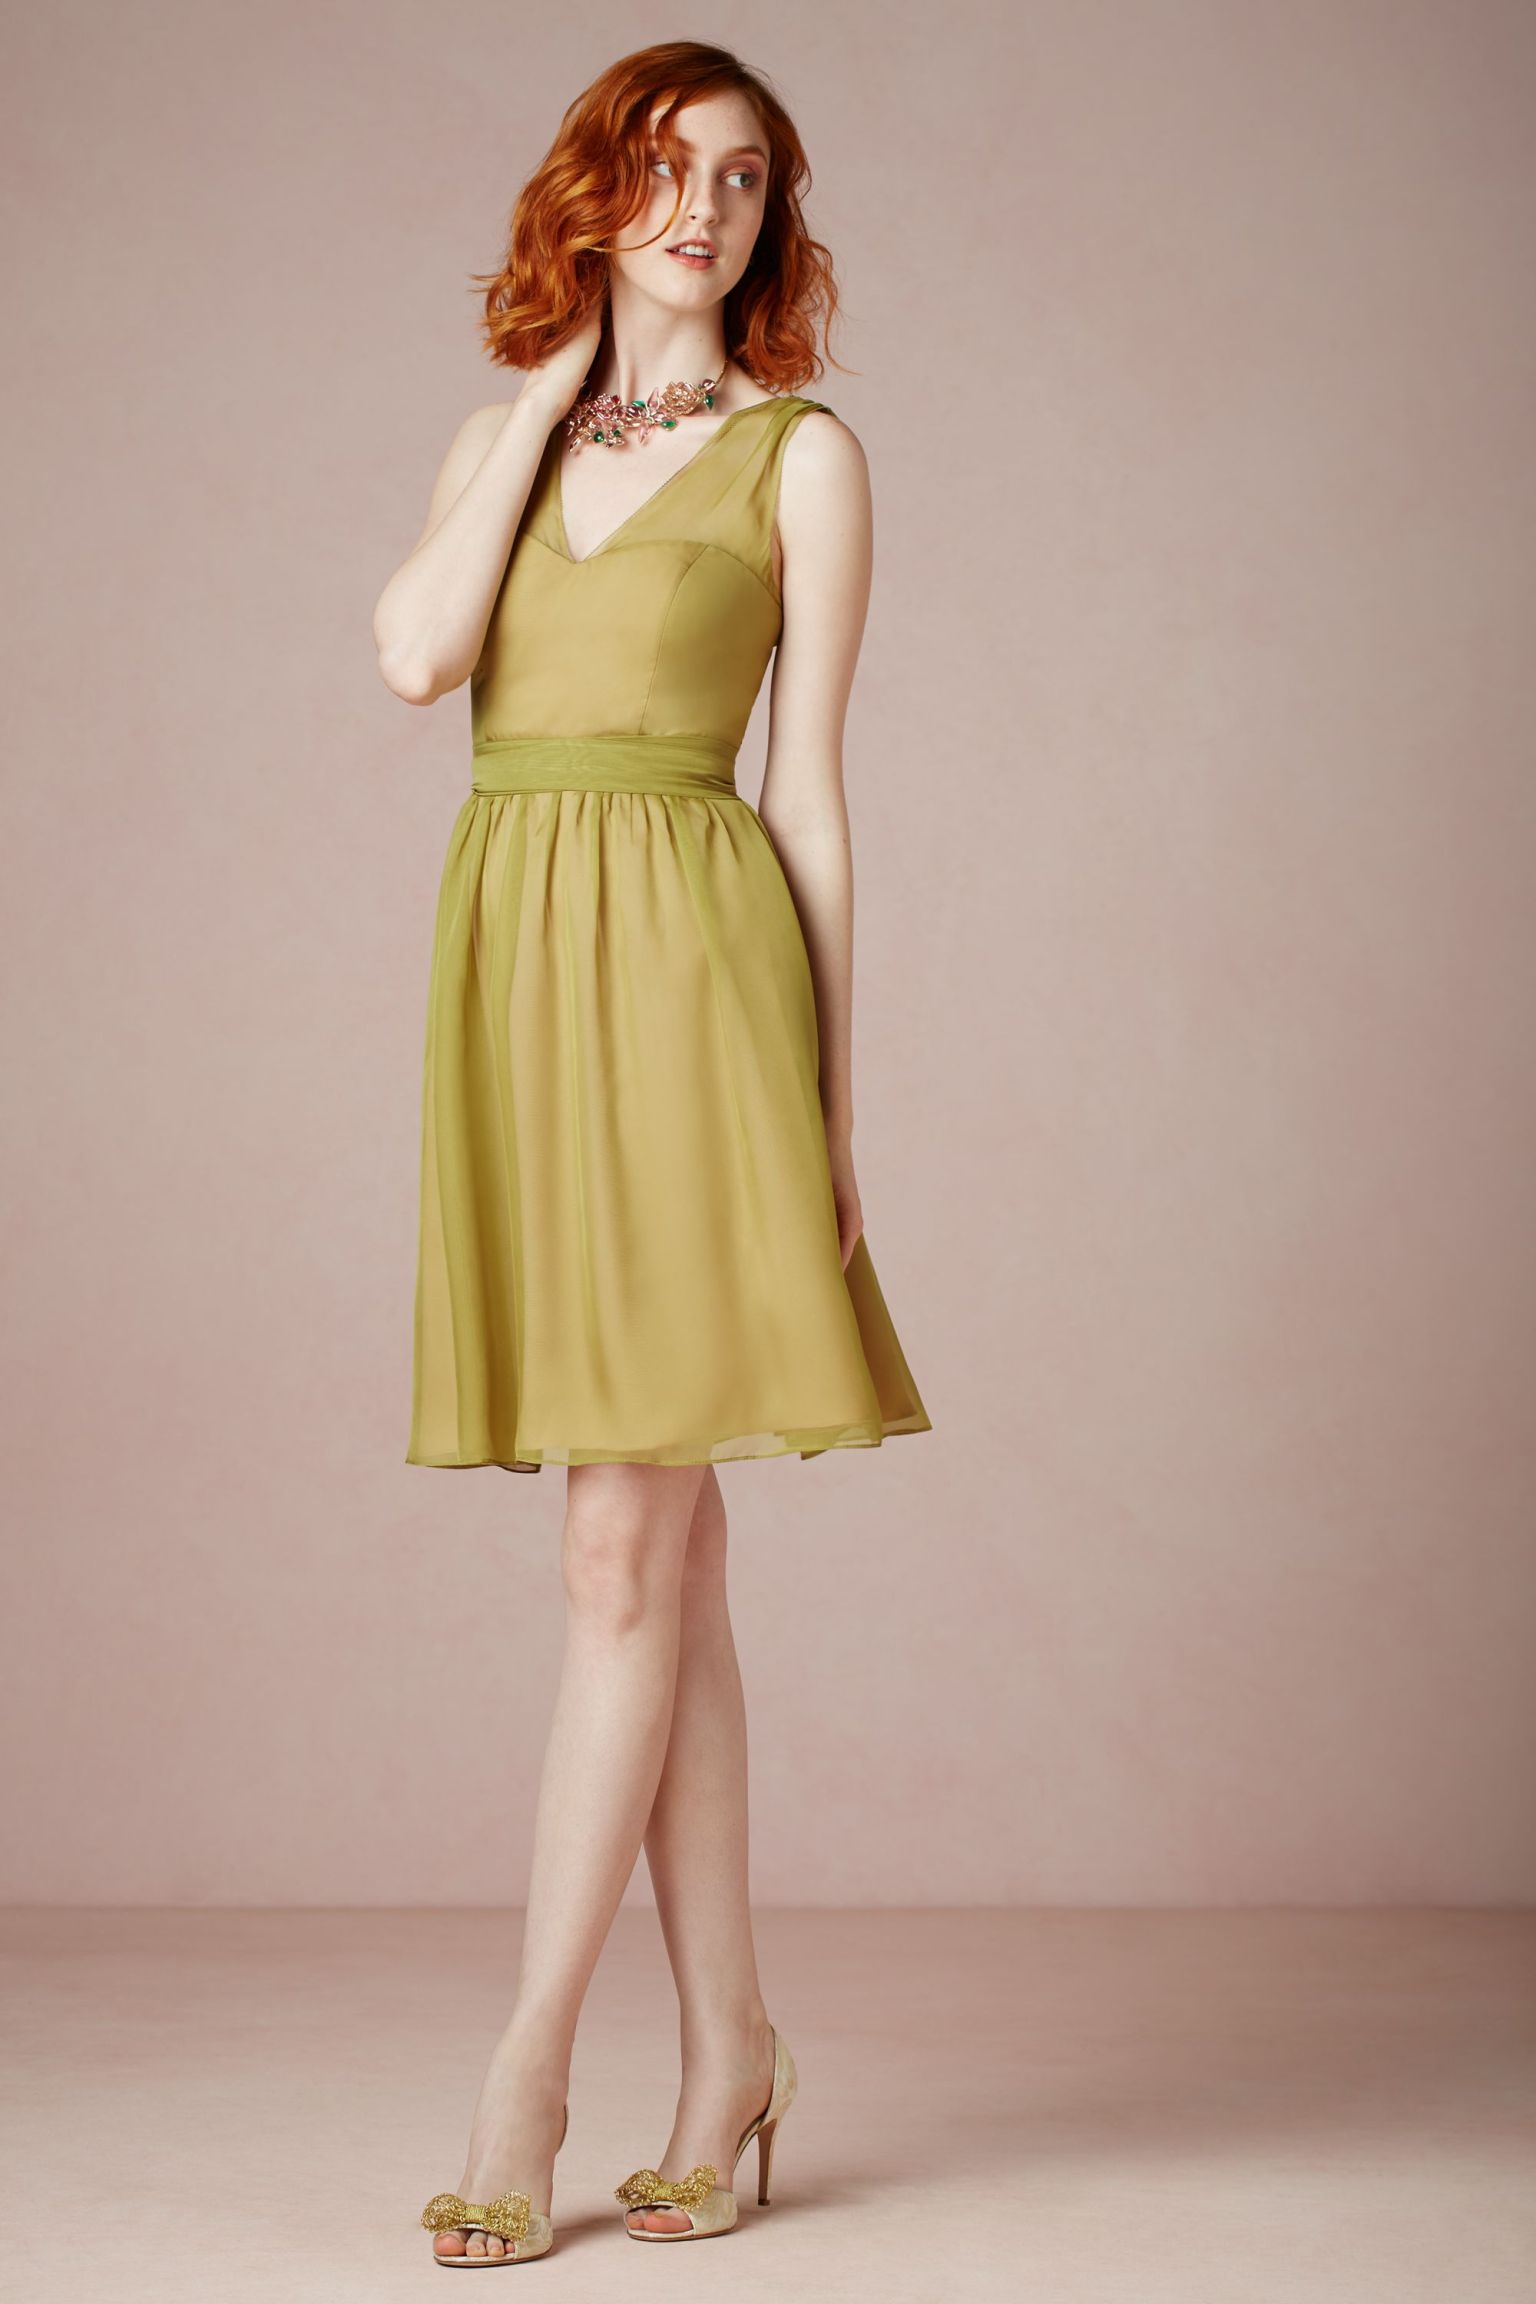 Fall wedding guest dress ideas photos huffpost for Dresses to wear to weddings as a guest